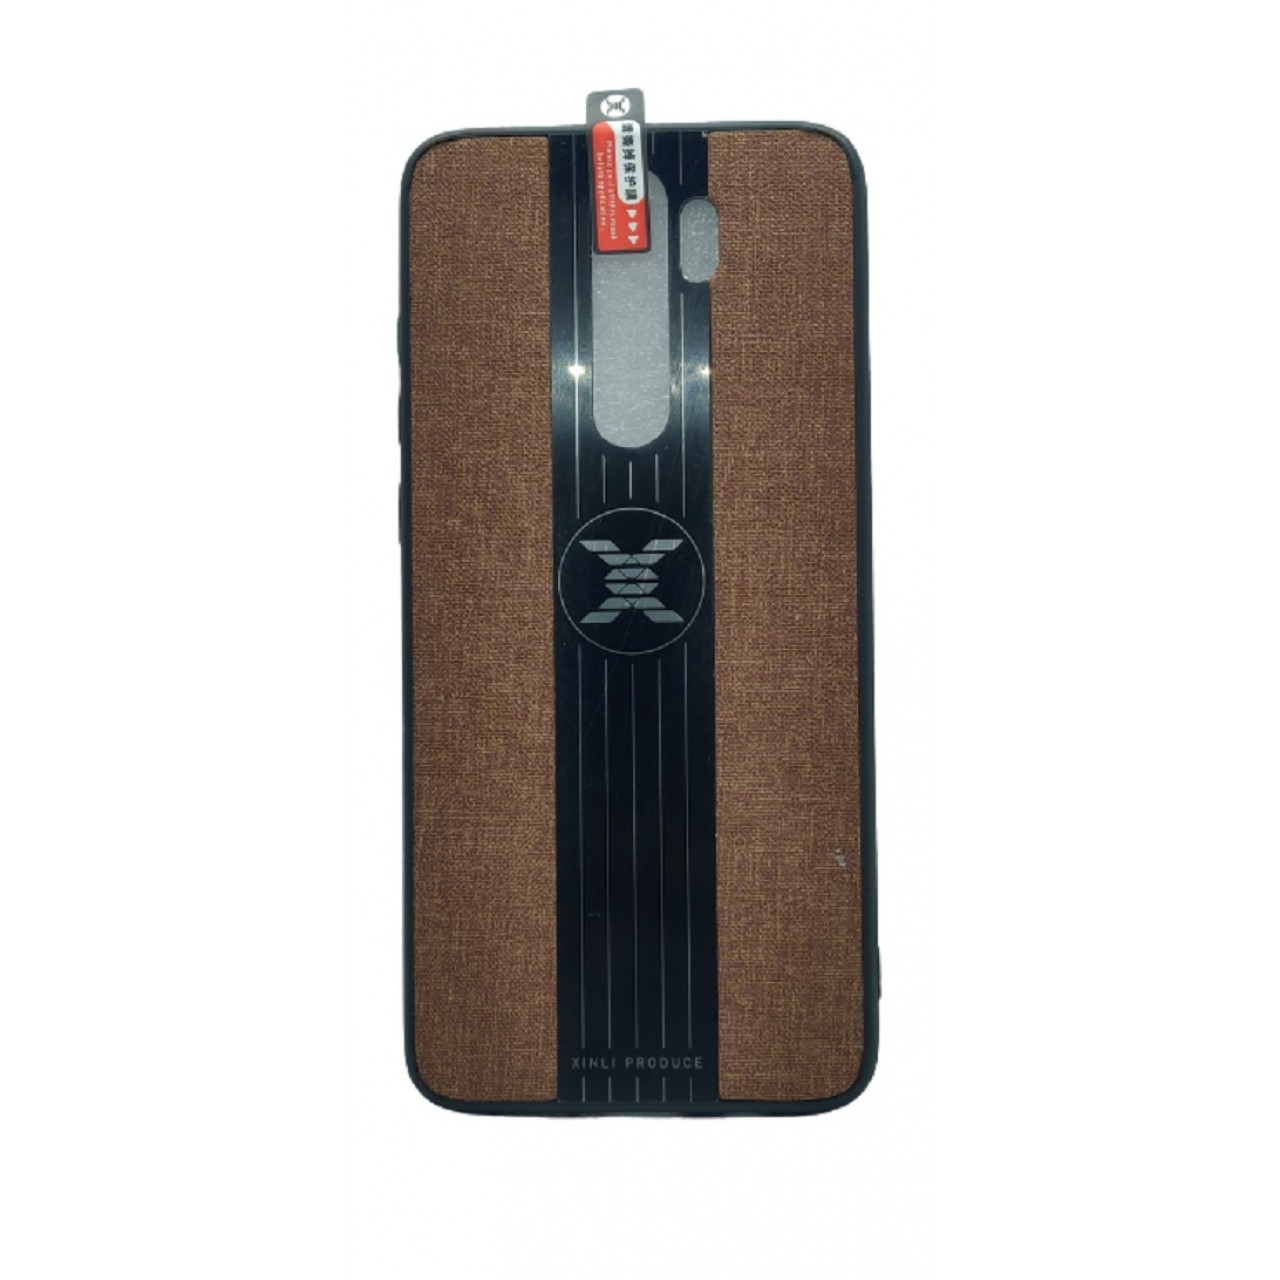 Back Case Cloth Pattern with ring for Redmi note 8 PRO Brown - Θήκη προστασίας με δαχτυλίδι στην πλάτη Καφέ - OEM